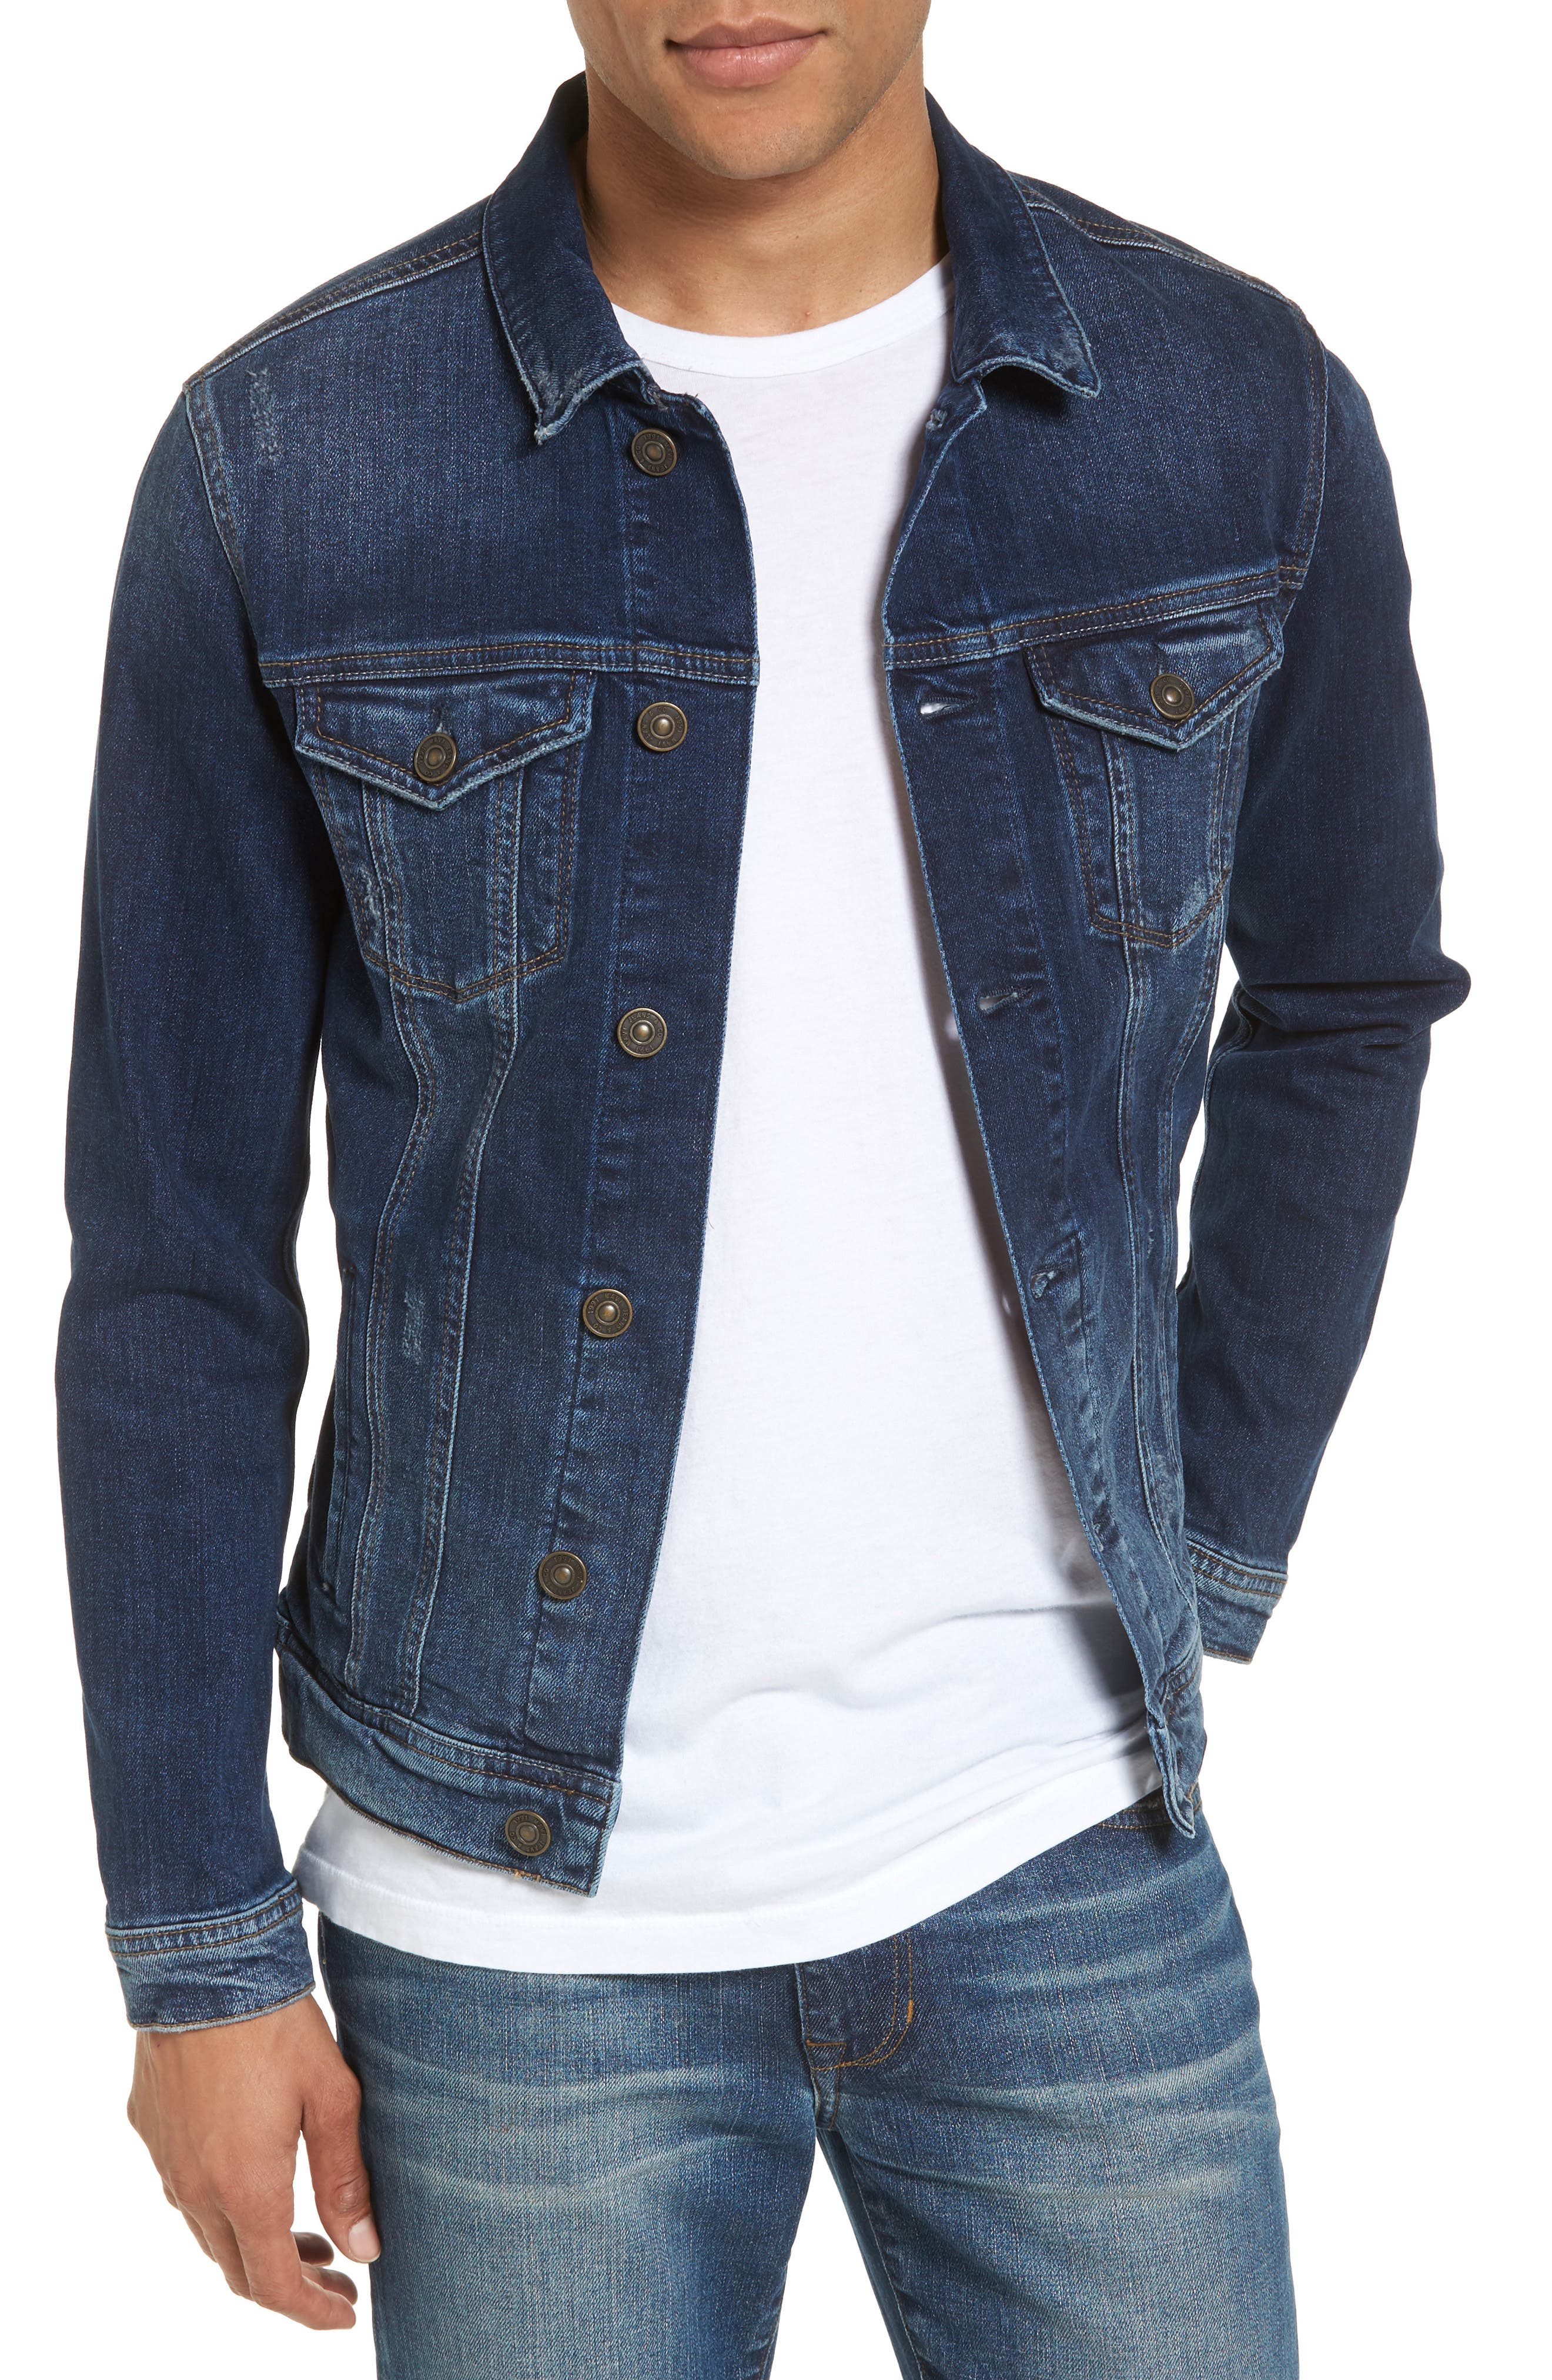 Frank Denim Jacket,                             Main thumbnail 1, color,                             BLUE